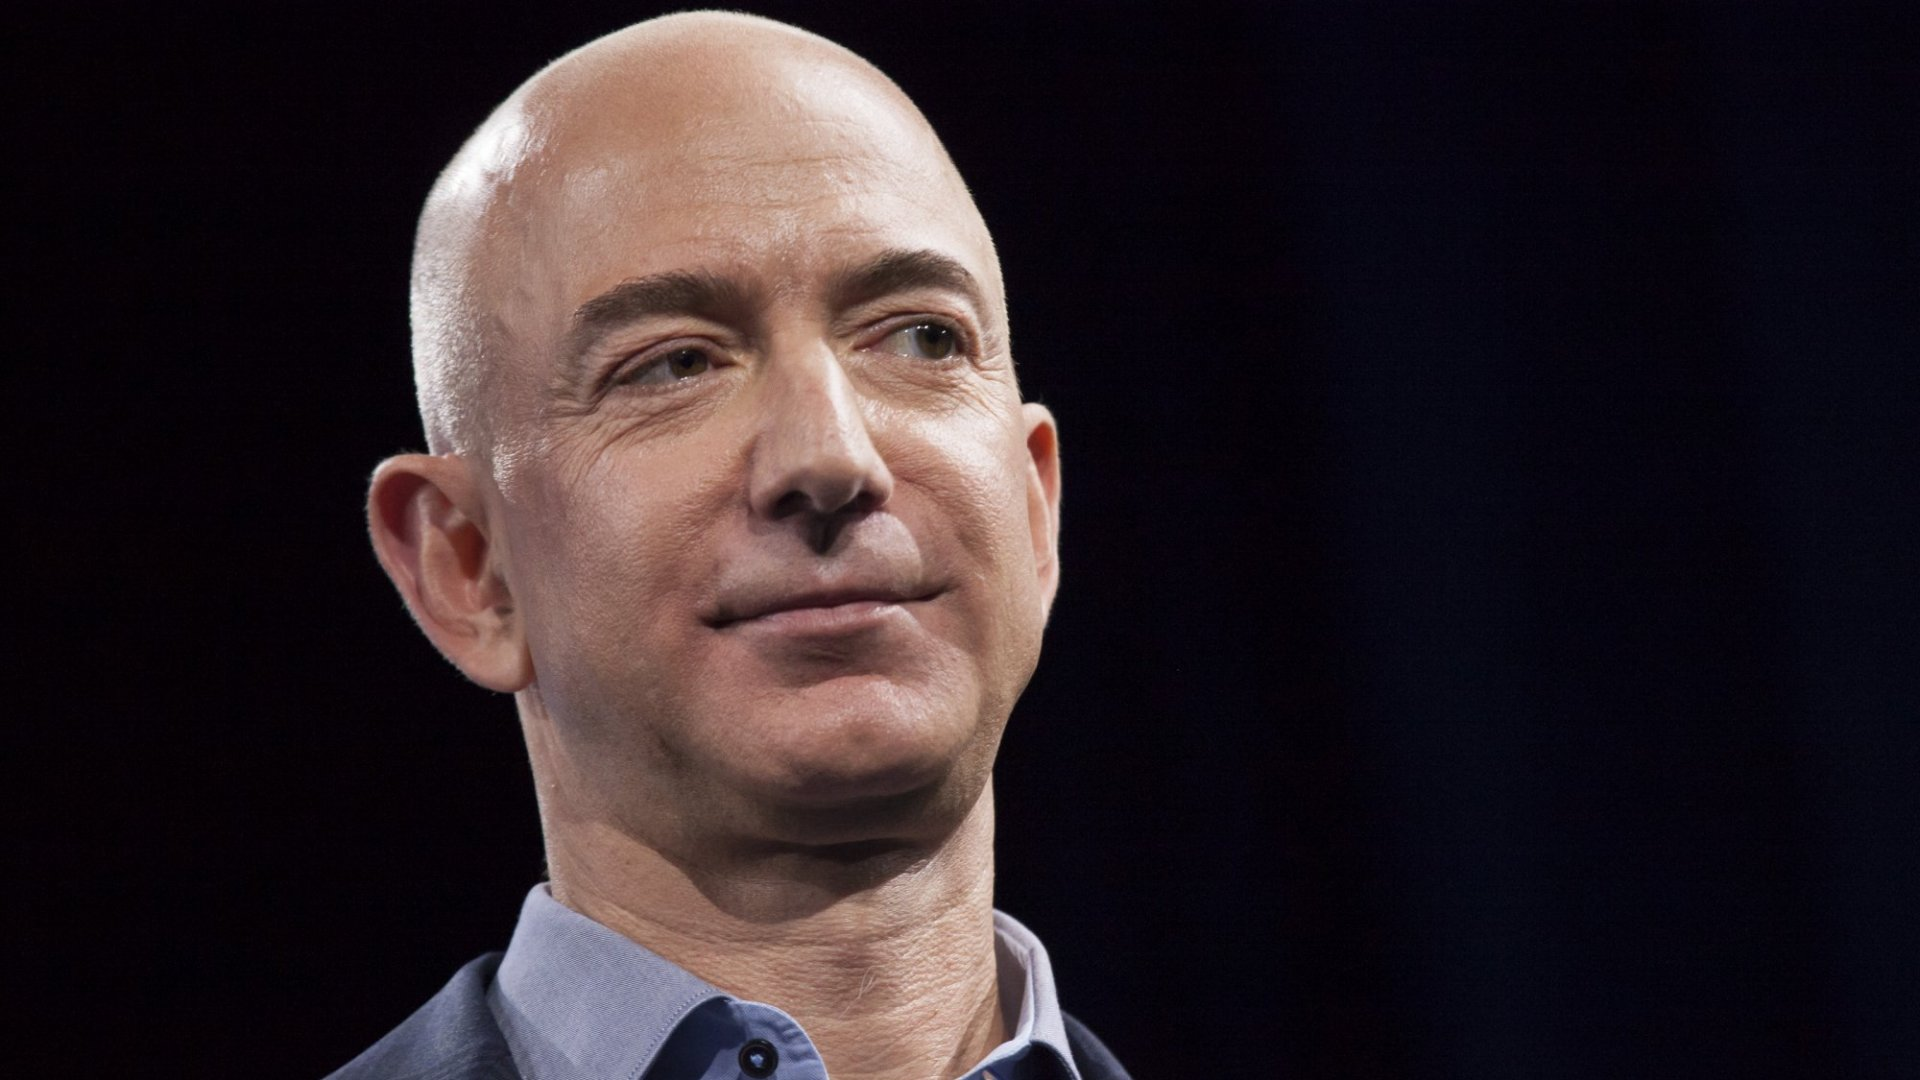 3 Counterintuitive Reasons Why Jeff Bezos Is So Productive